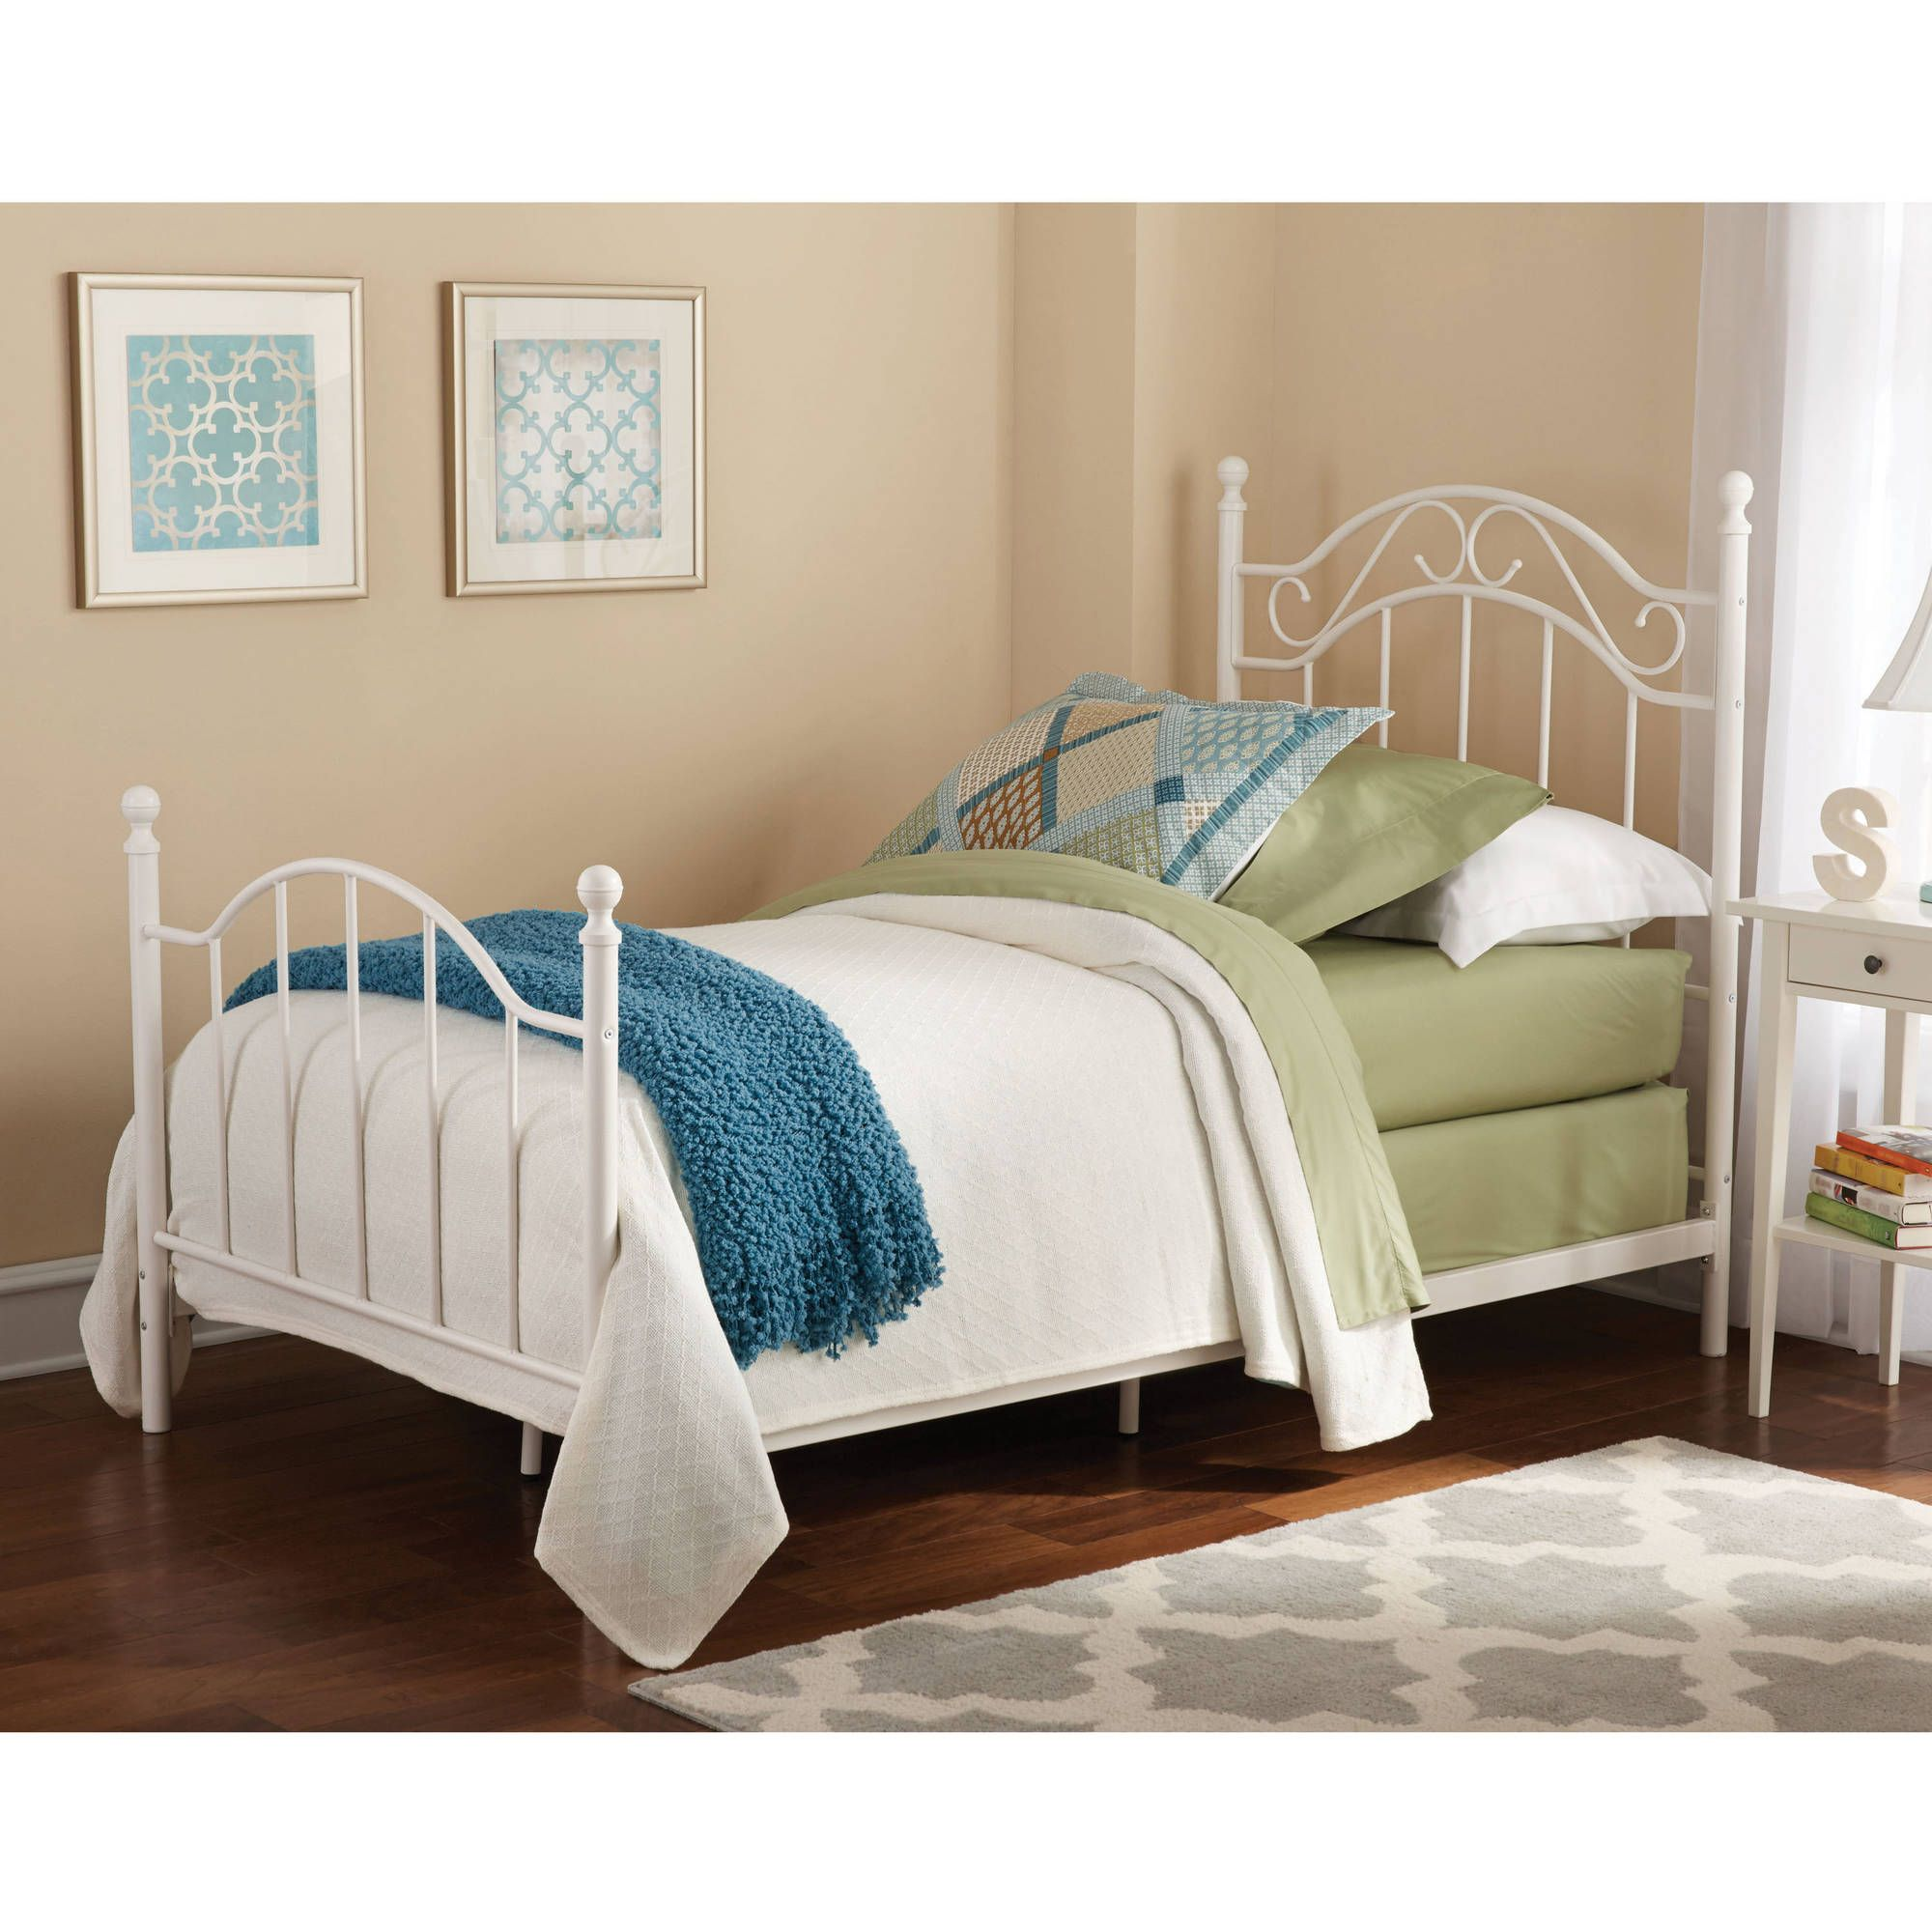 Home White Metal Bed White Bed Frame White Metal Bed Frame